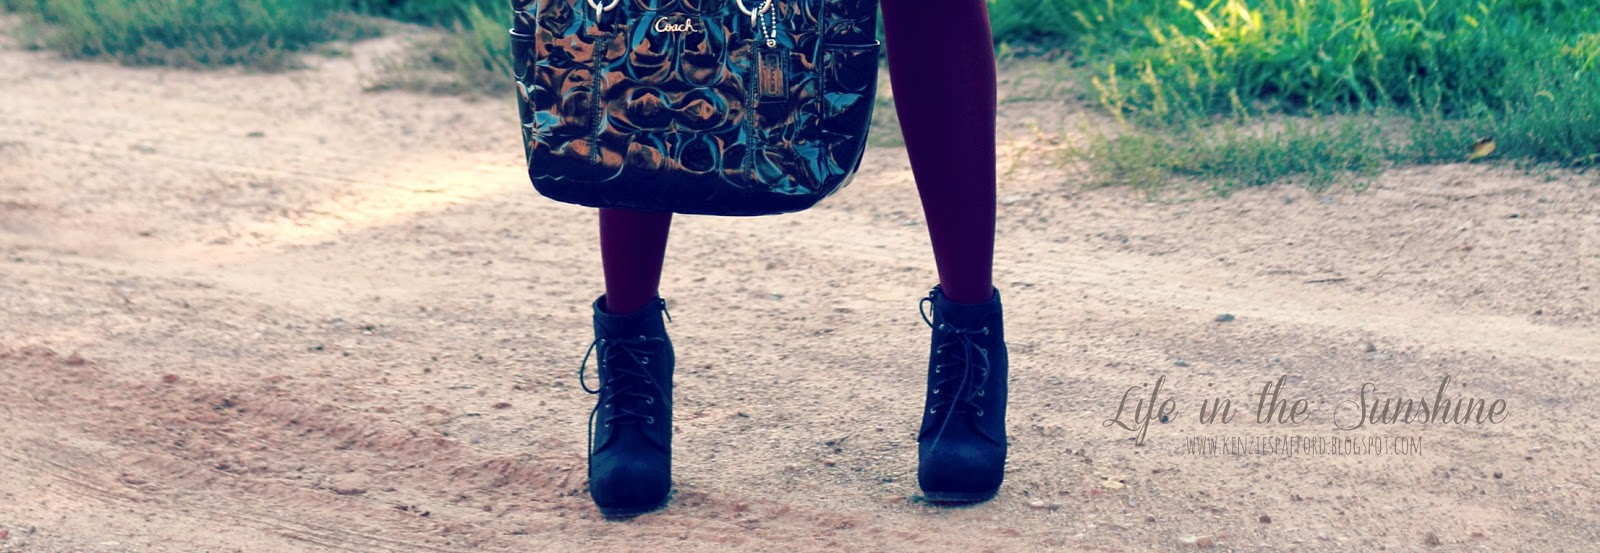 These Boots Were Made For Walking - Life in the Sunshine Blog